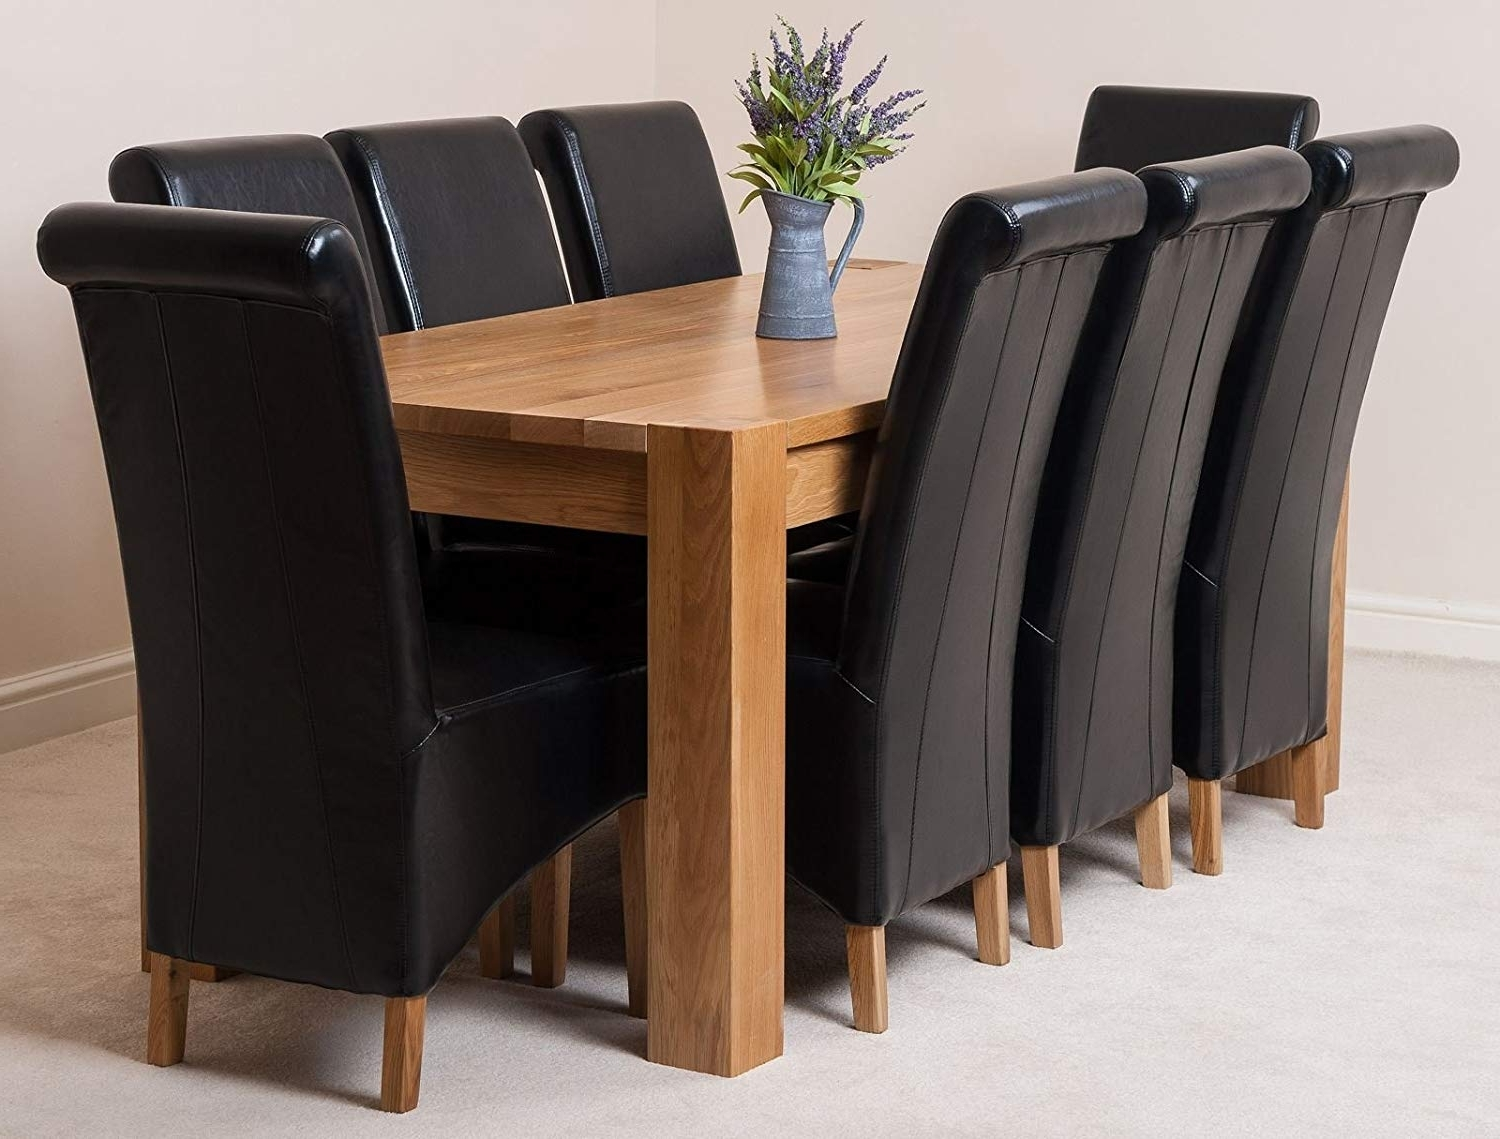 Most Recent Kuba Solid Oak 180 X 90 X 78 Cm Dining Room Kitchen Table & 8 Black Throughout Oak Dining Tables And Leather Chairs (View 9 of 25)